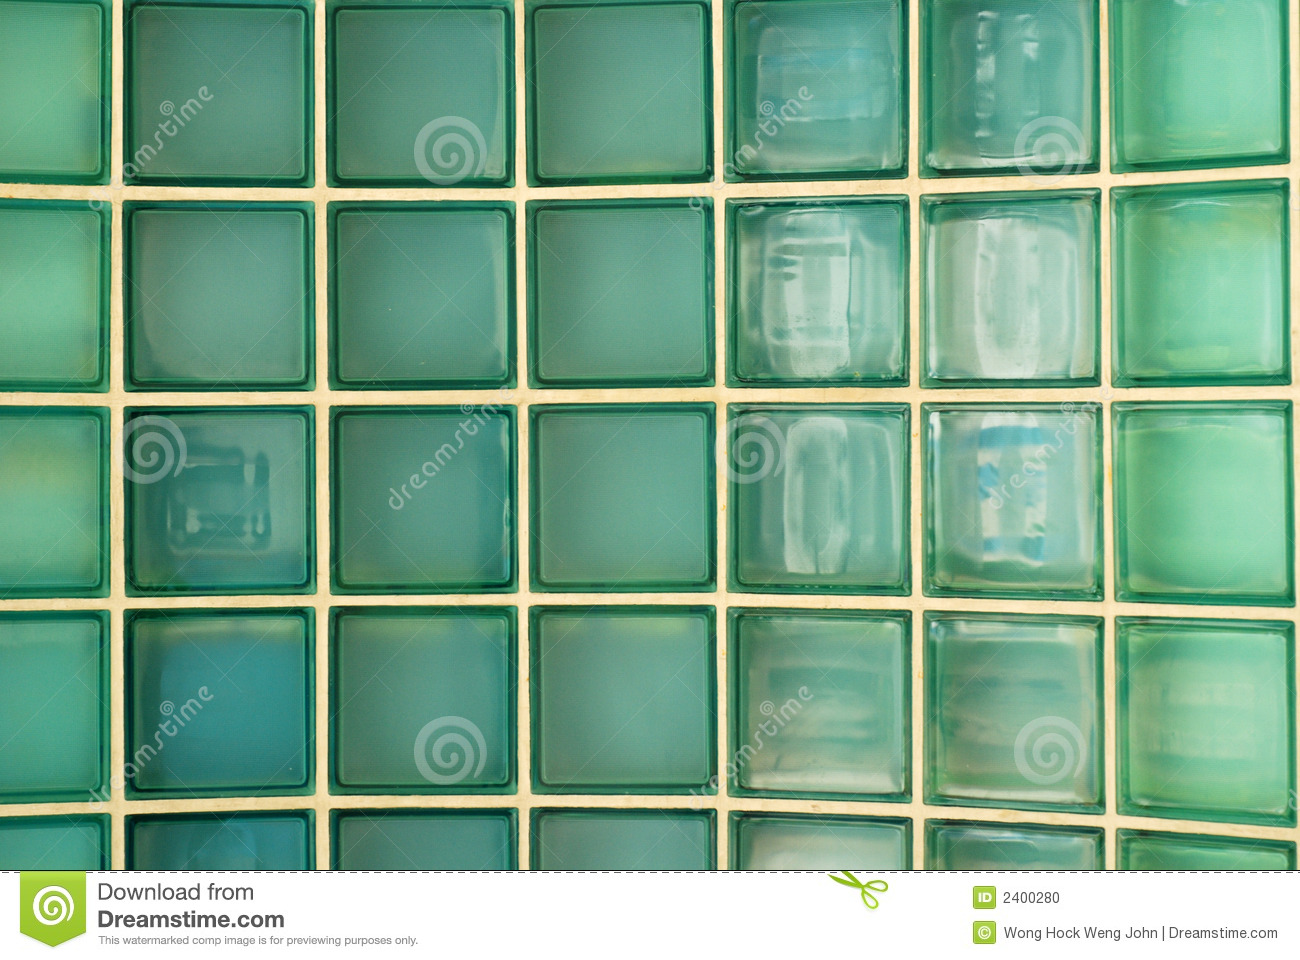 Brique de mur en verre photo stock image 2400280 - Mur de brique de verre ...